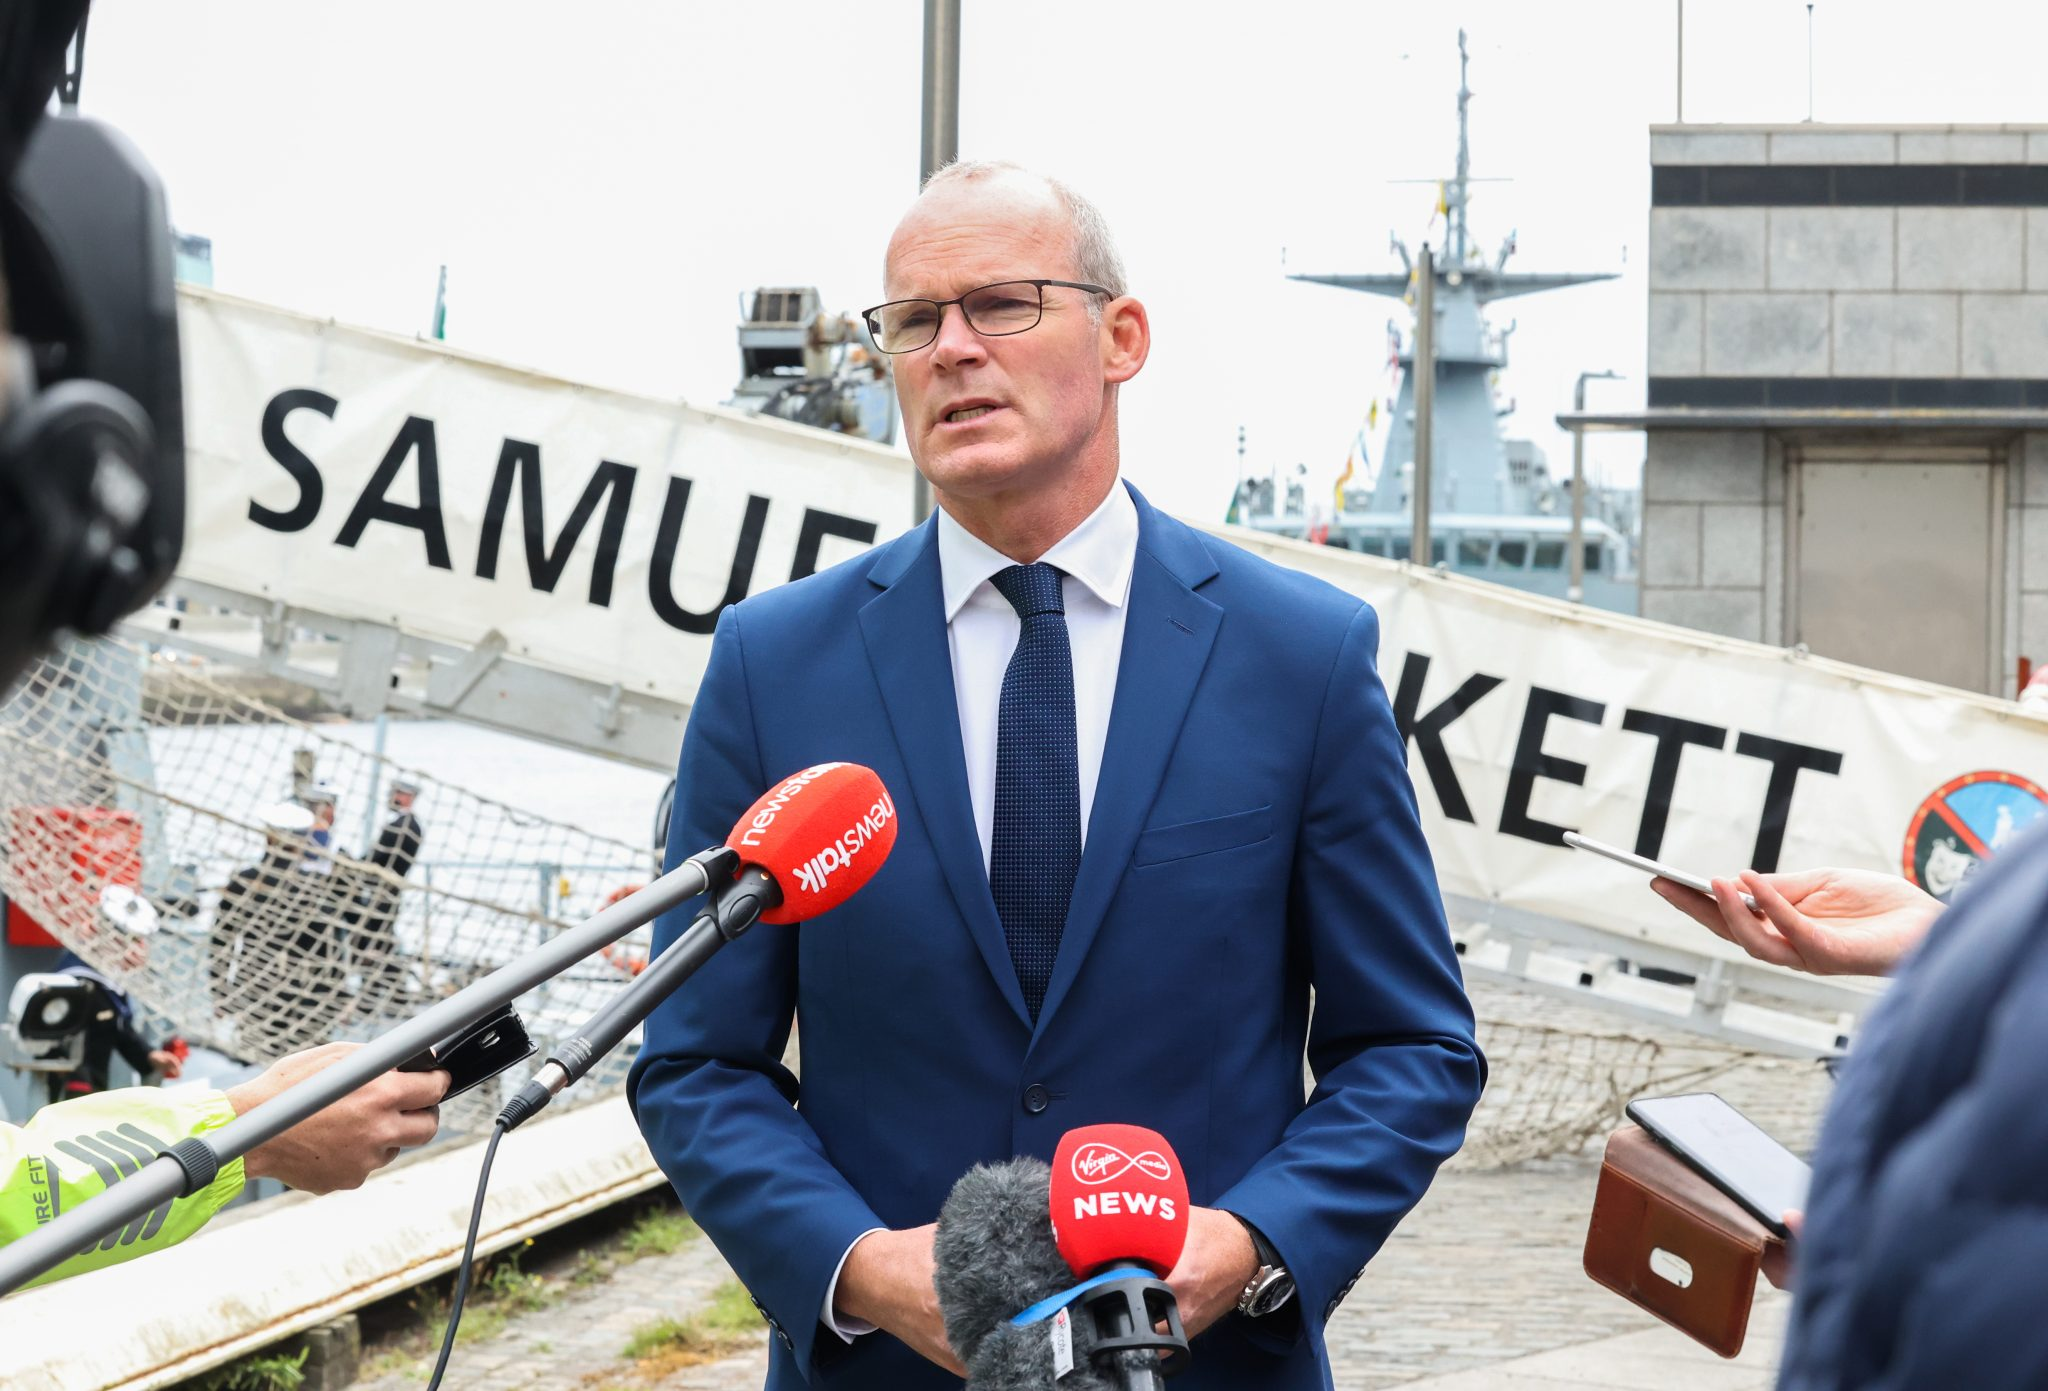 Foreign Affairs Minister Simon Coveney after disembarking the L.É. Samuel Beckett on Sir John Rogerson's Quay, 01-09-2021. Image: Sam Boal/RollingNews